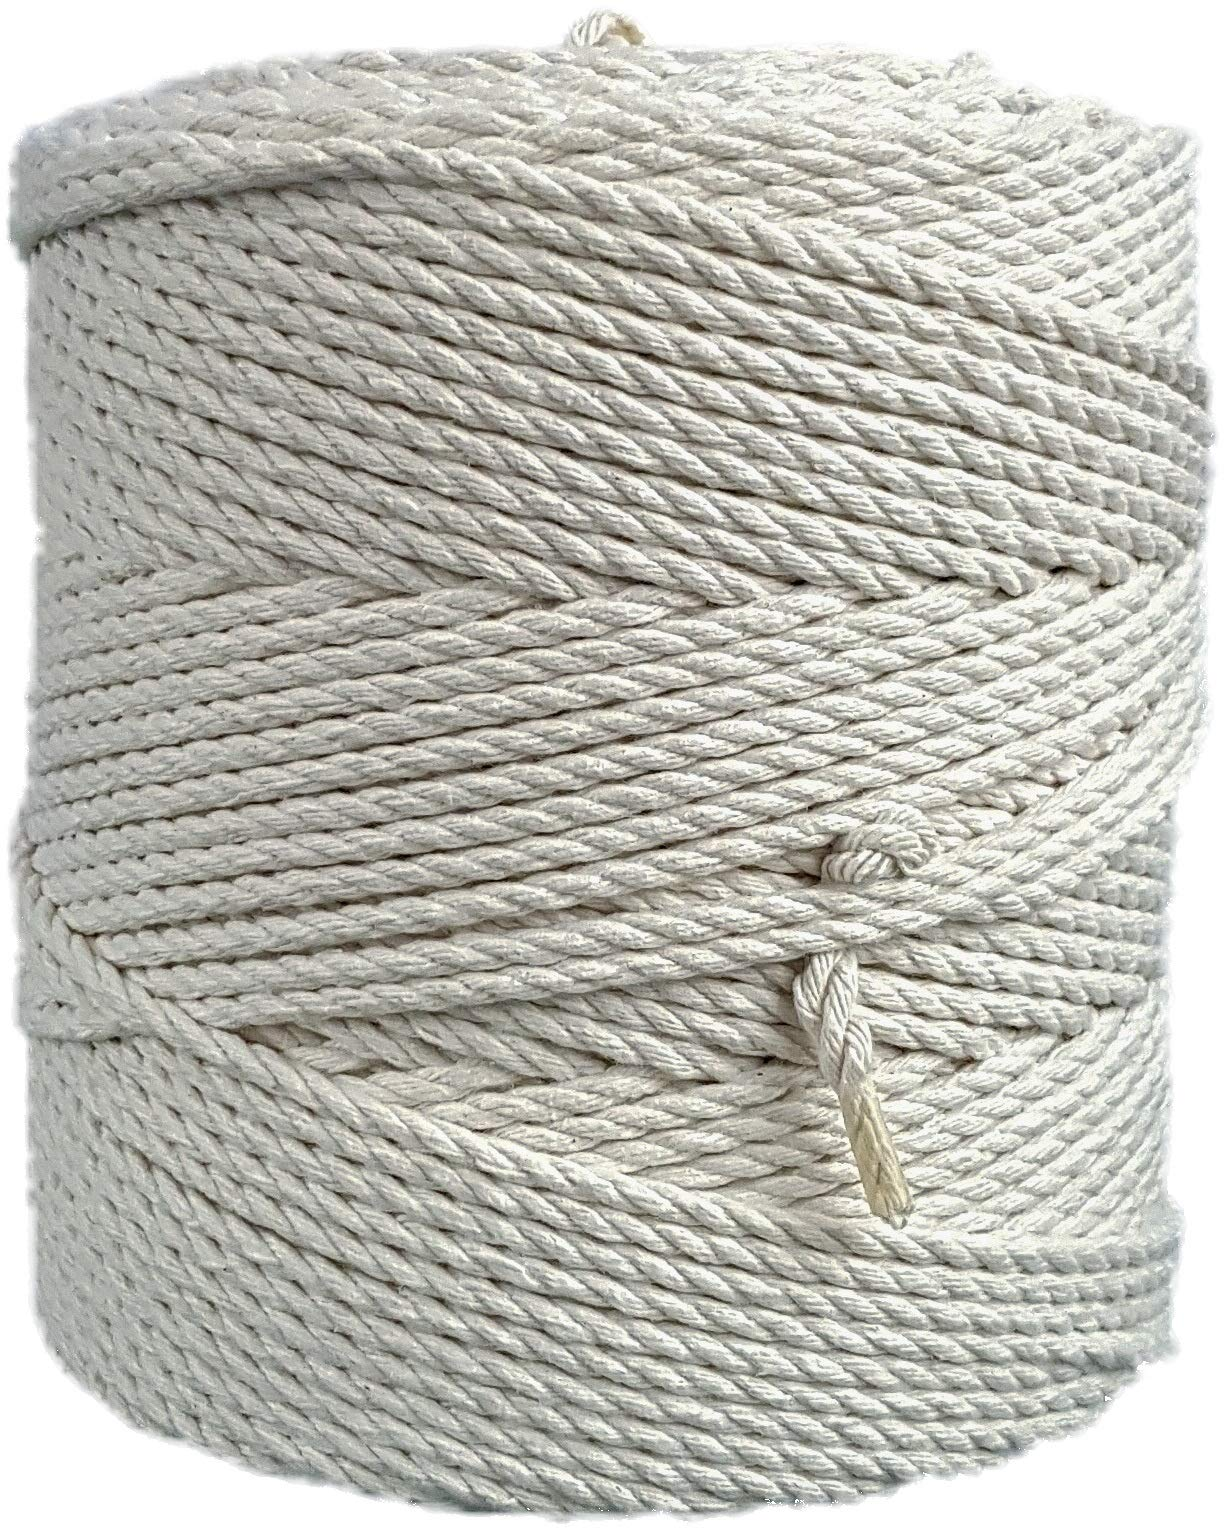 Macrame cord 4mm natural cotton cord 853 feet macrame rope 284 yd. cotton rope (4mm x 260m (about 284 yd.)) by MB Cordas (Image #1)